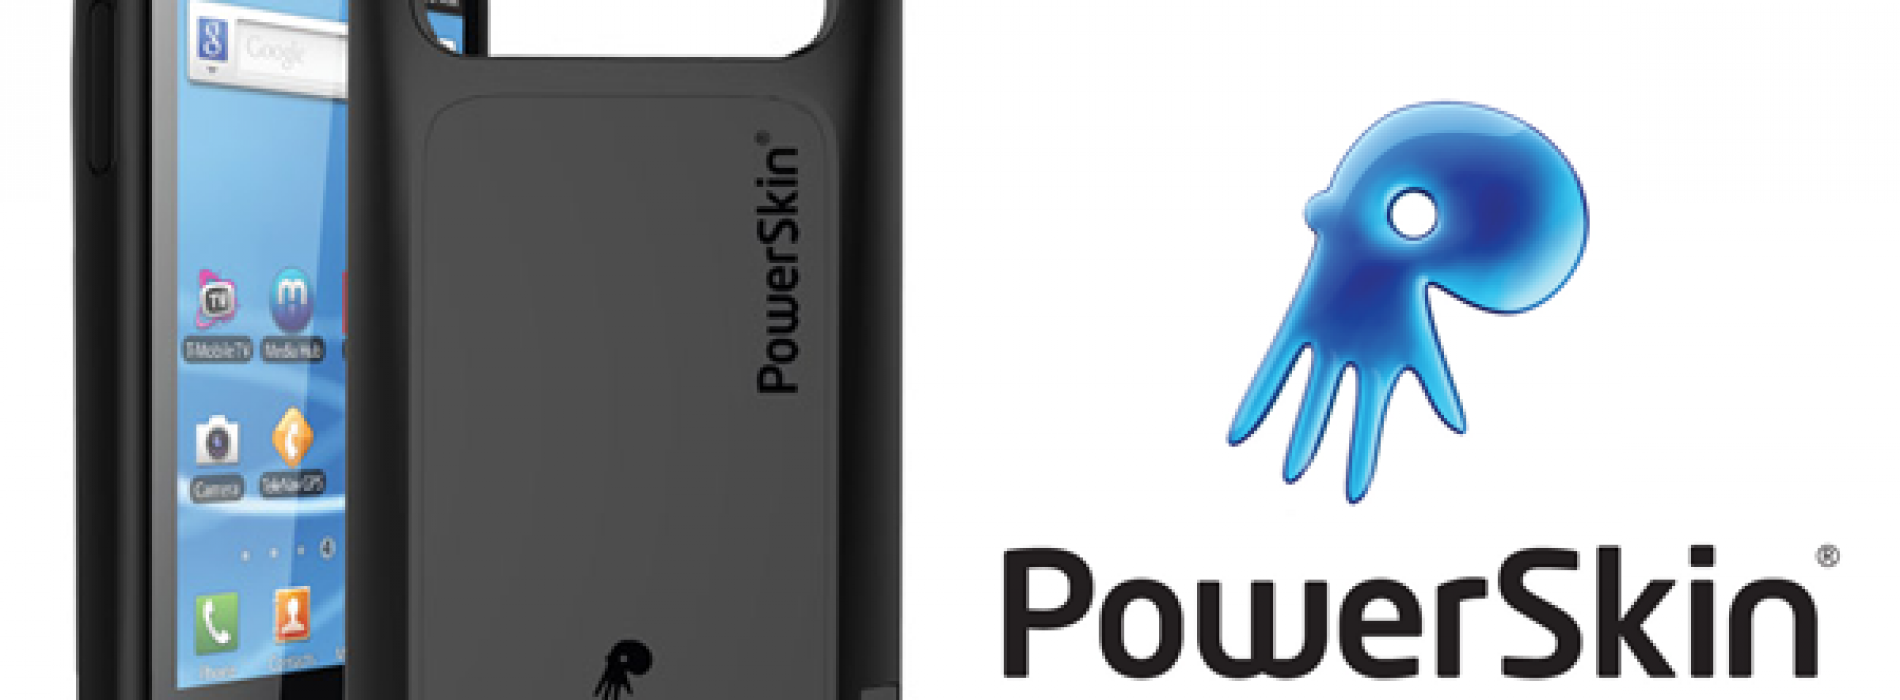 Powerskin Battery Case review (Galaxy S II)